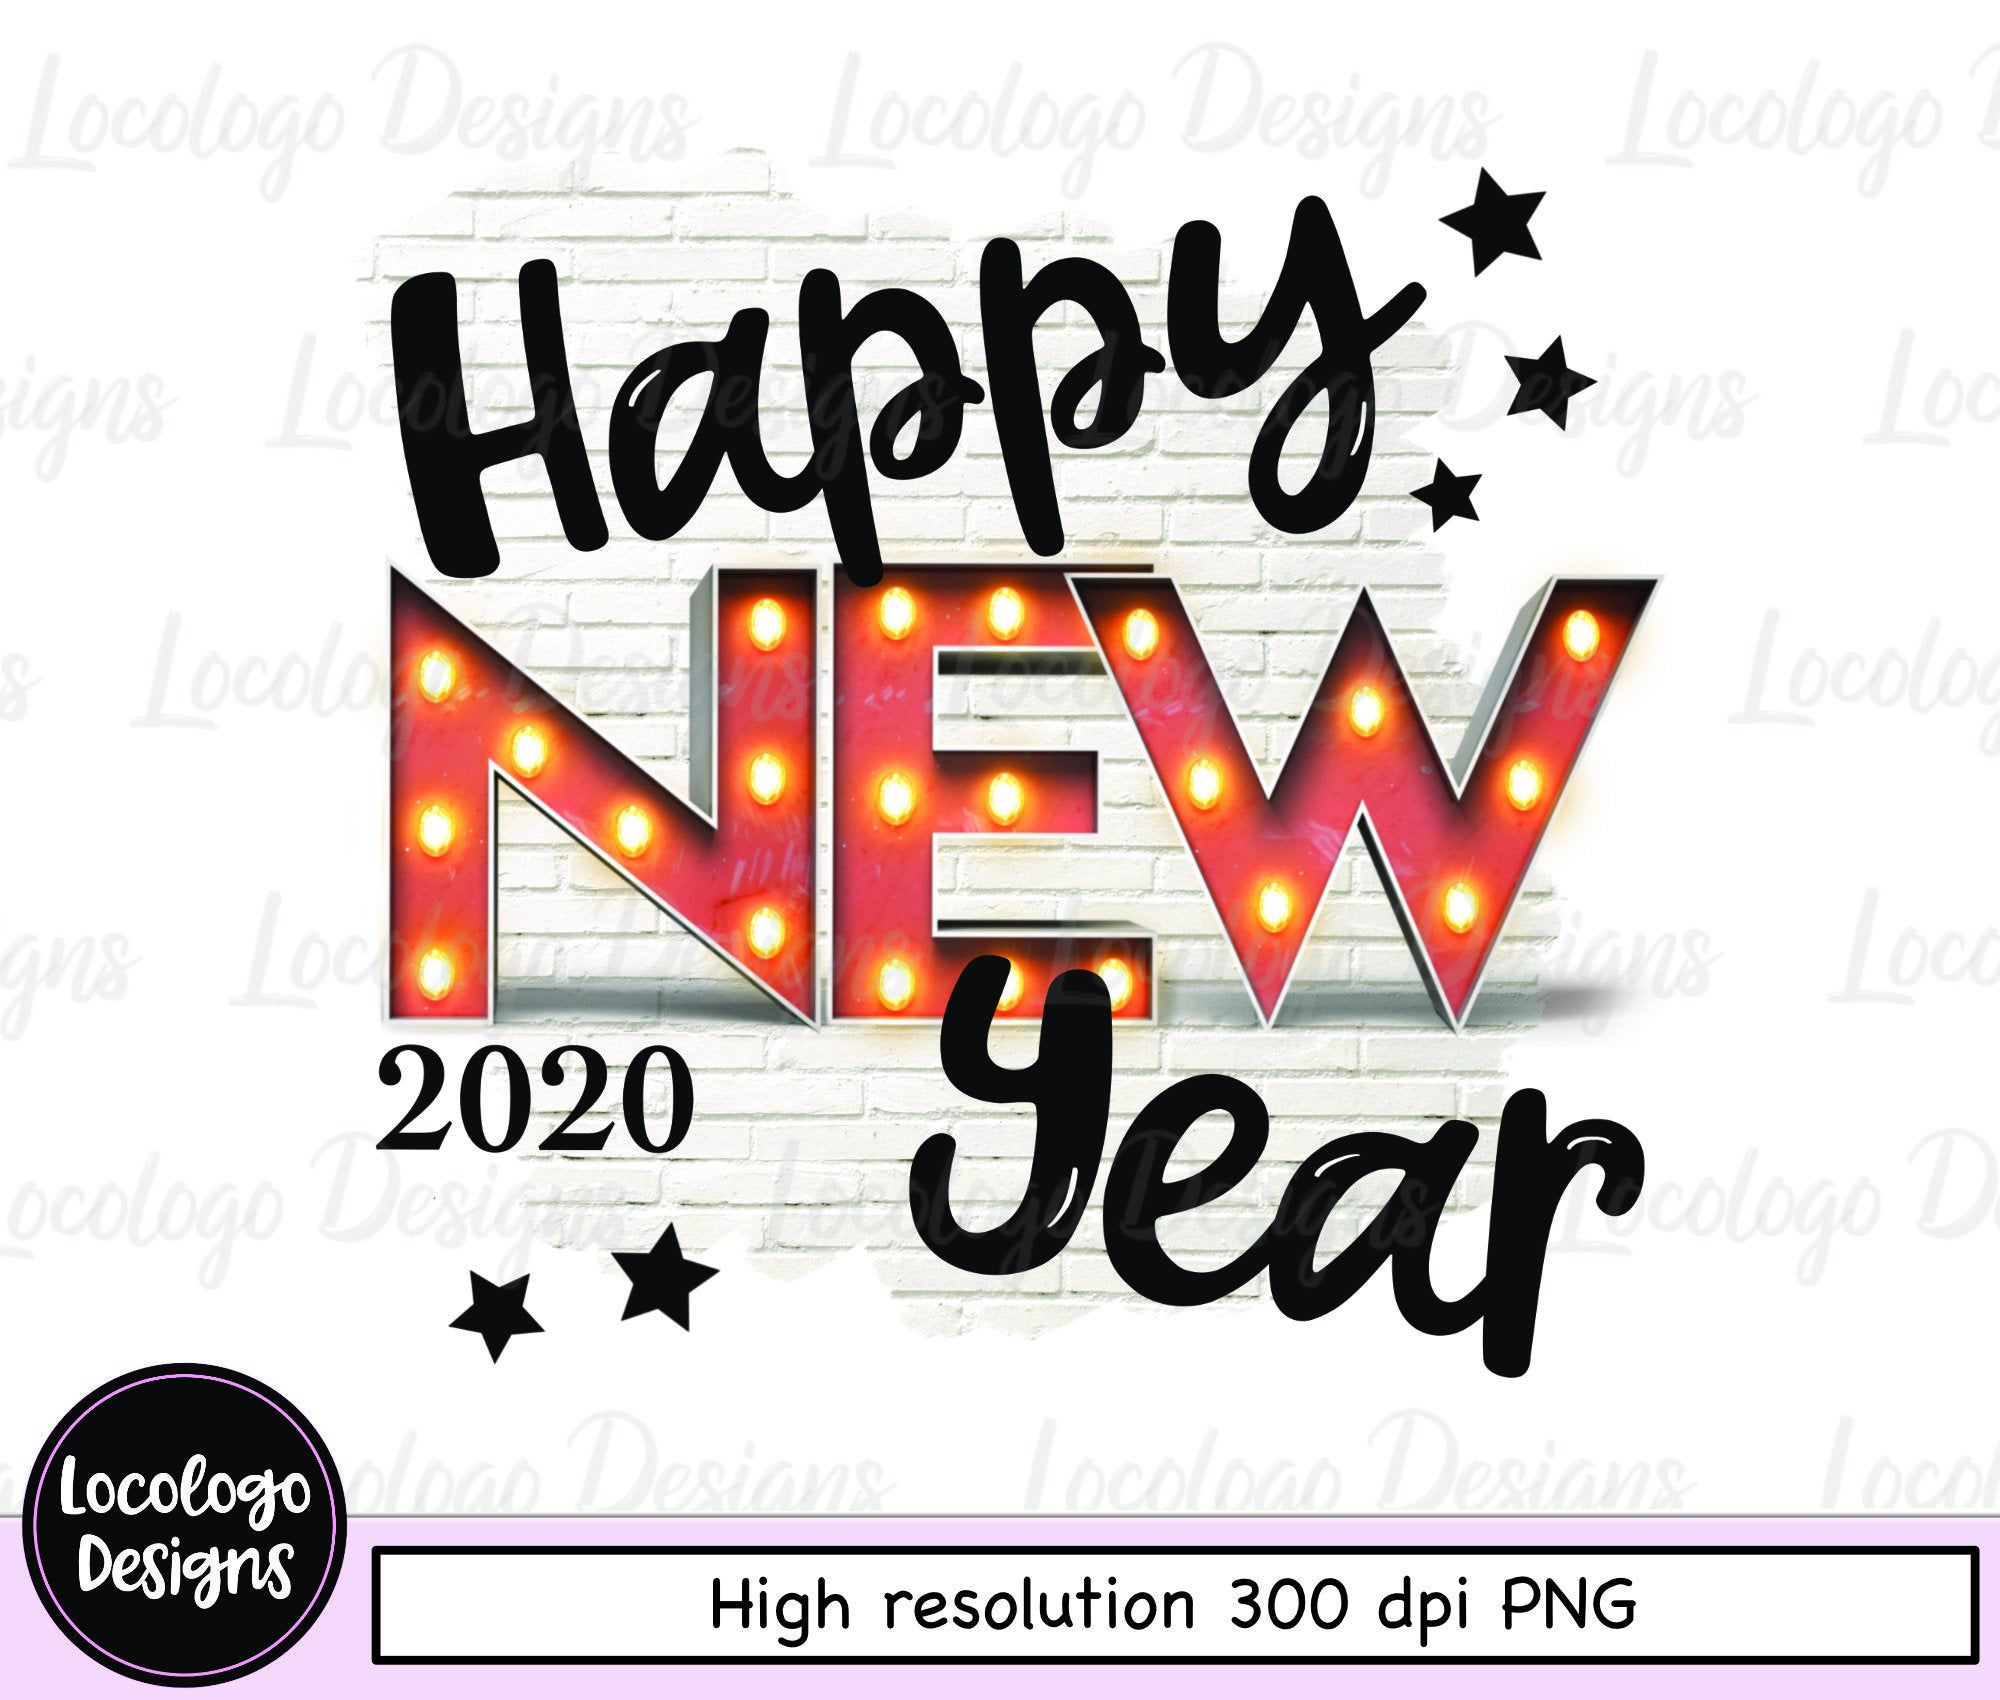 happy new year 2020 clipart 2020 png new years eve clipart new years eve sublimation design ม ร ปภาพ ด ไซน pinterest